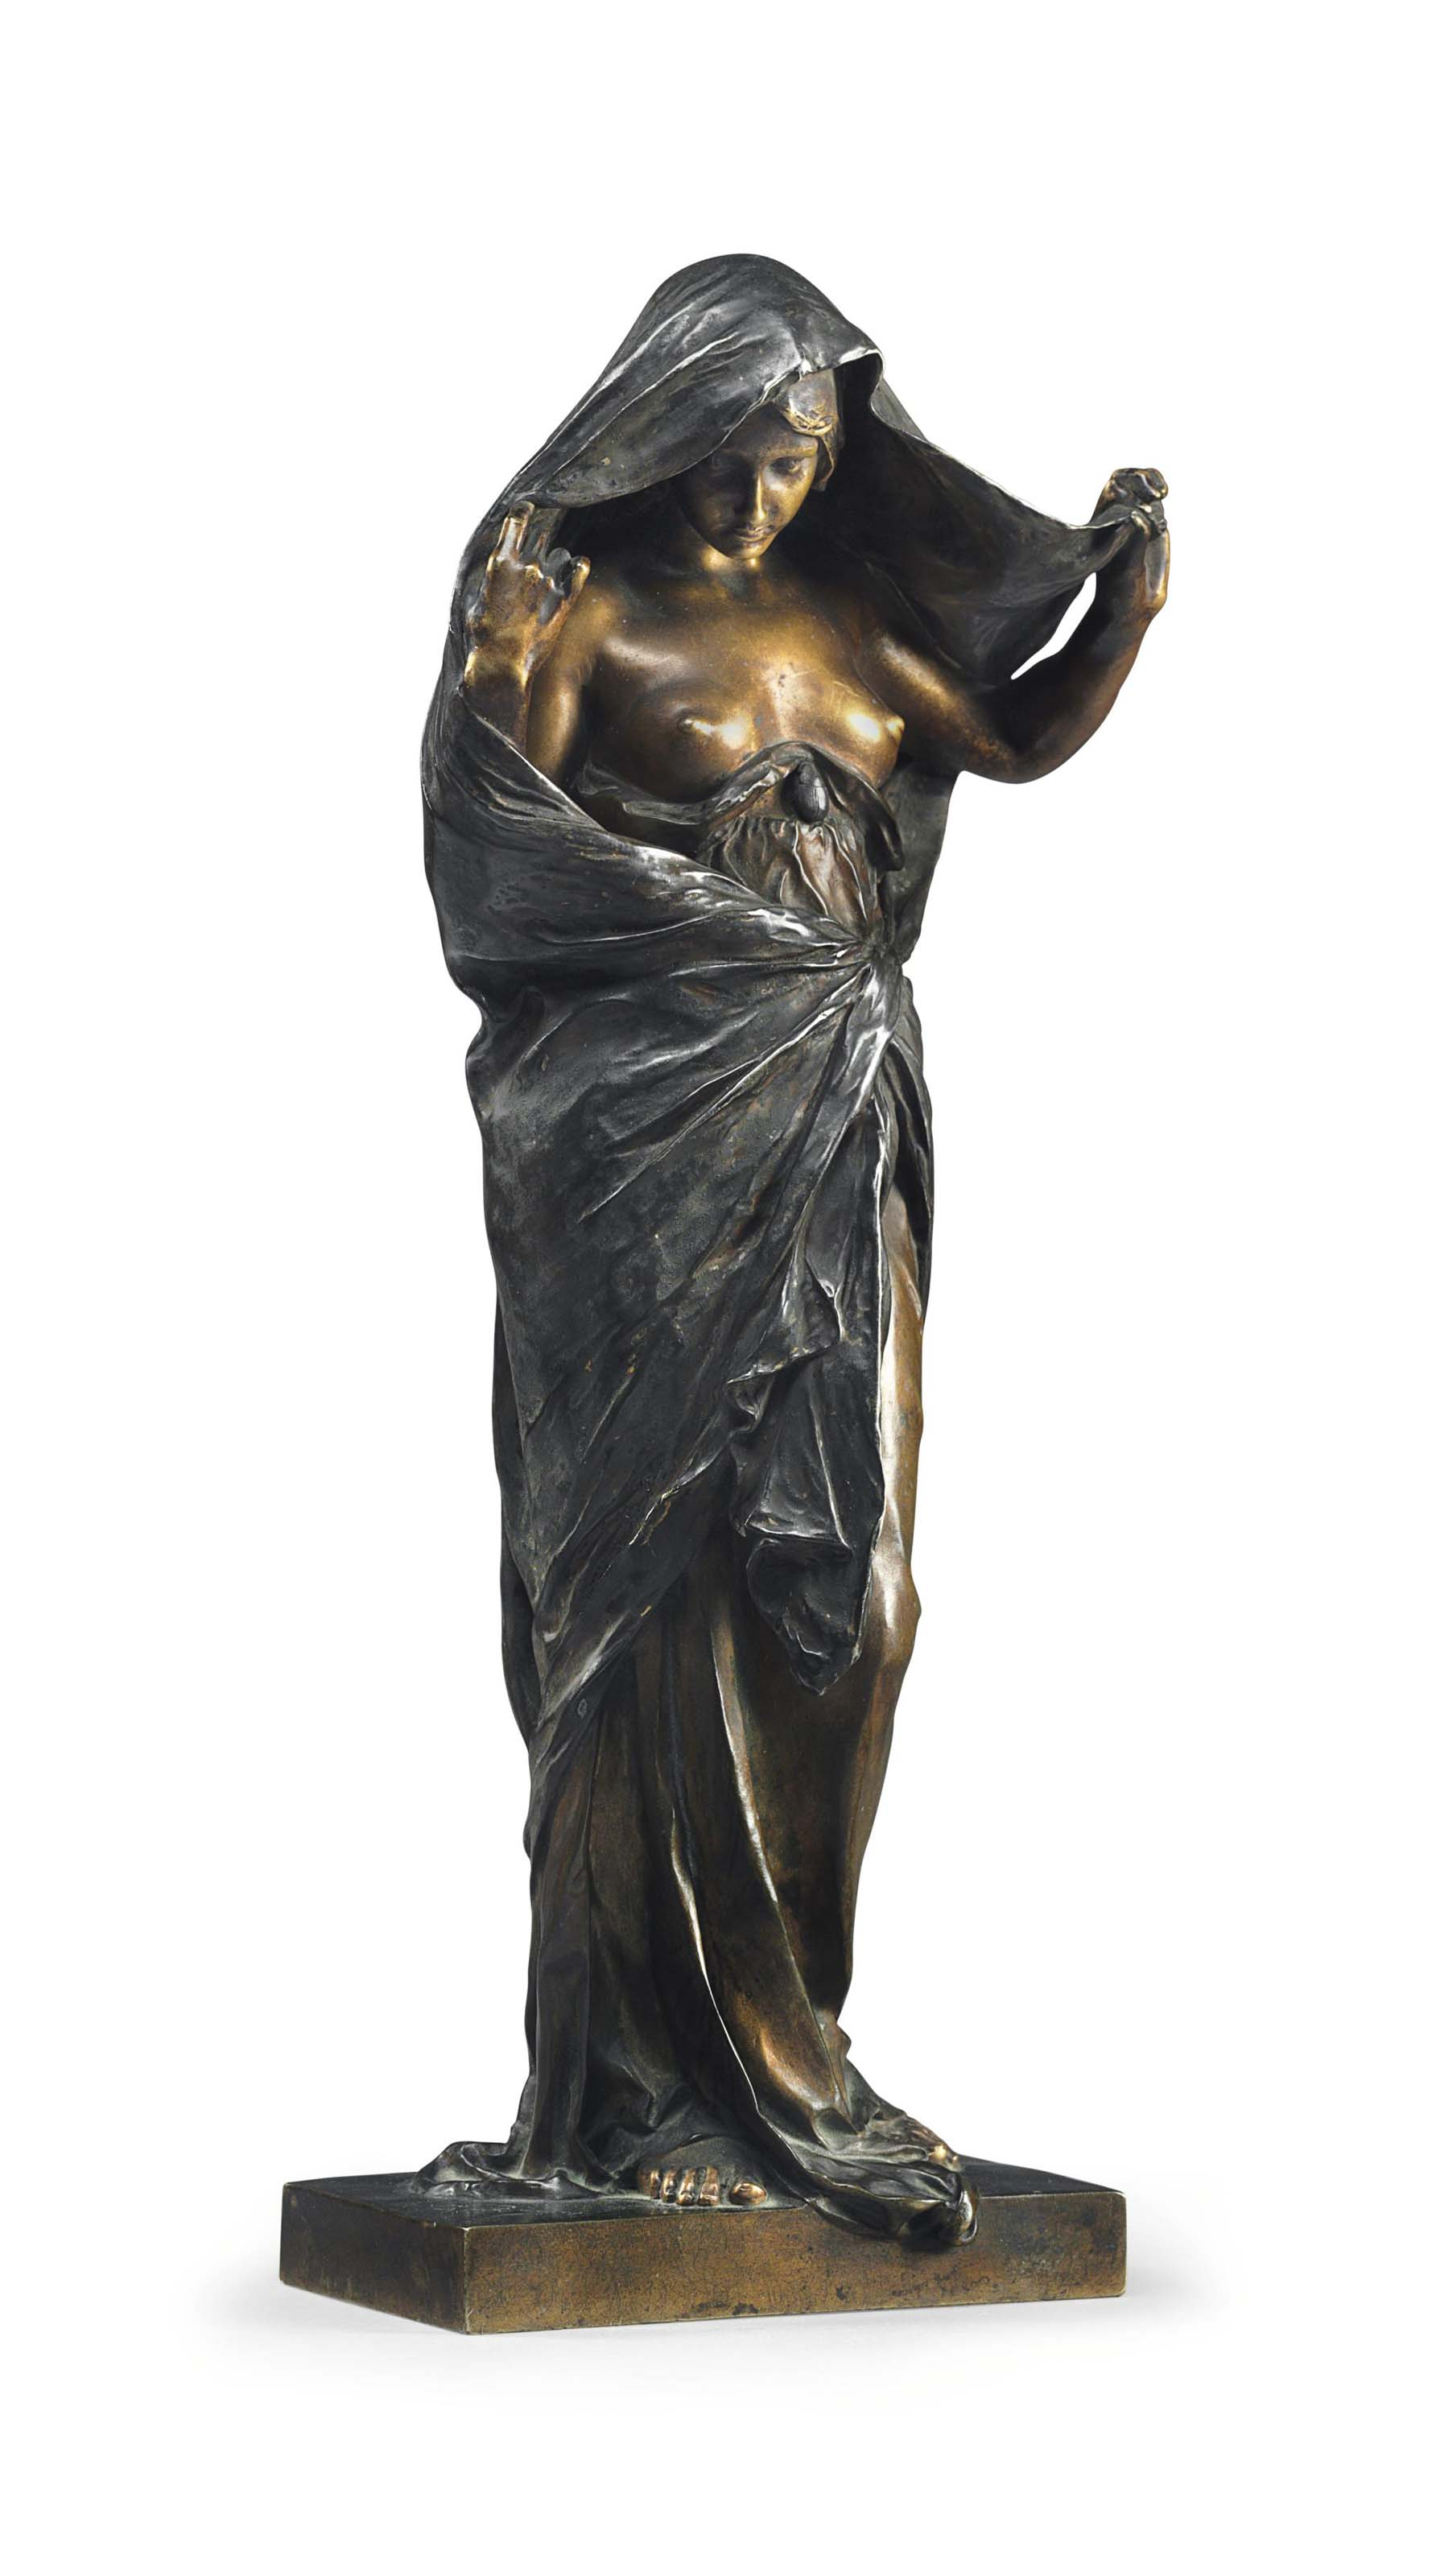 A FRENCH PATINATED AND SILVERED-BRONZE FIGURE, TITLED 'LA NATURE SE DEVOILANT DEVANT LA SCIENCE' (NATURE REVEALING HERSELF BEFORE SCIENCE)